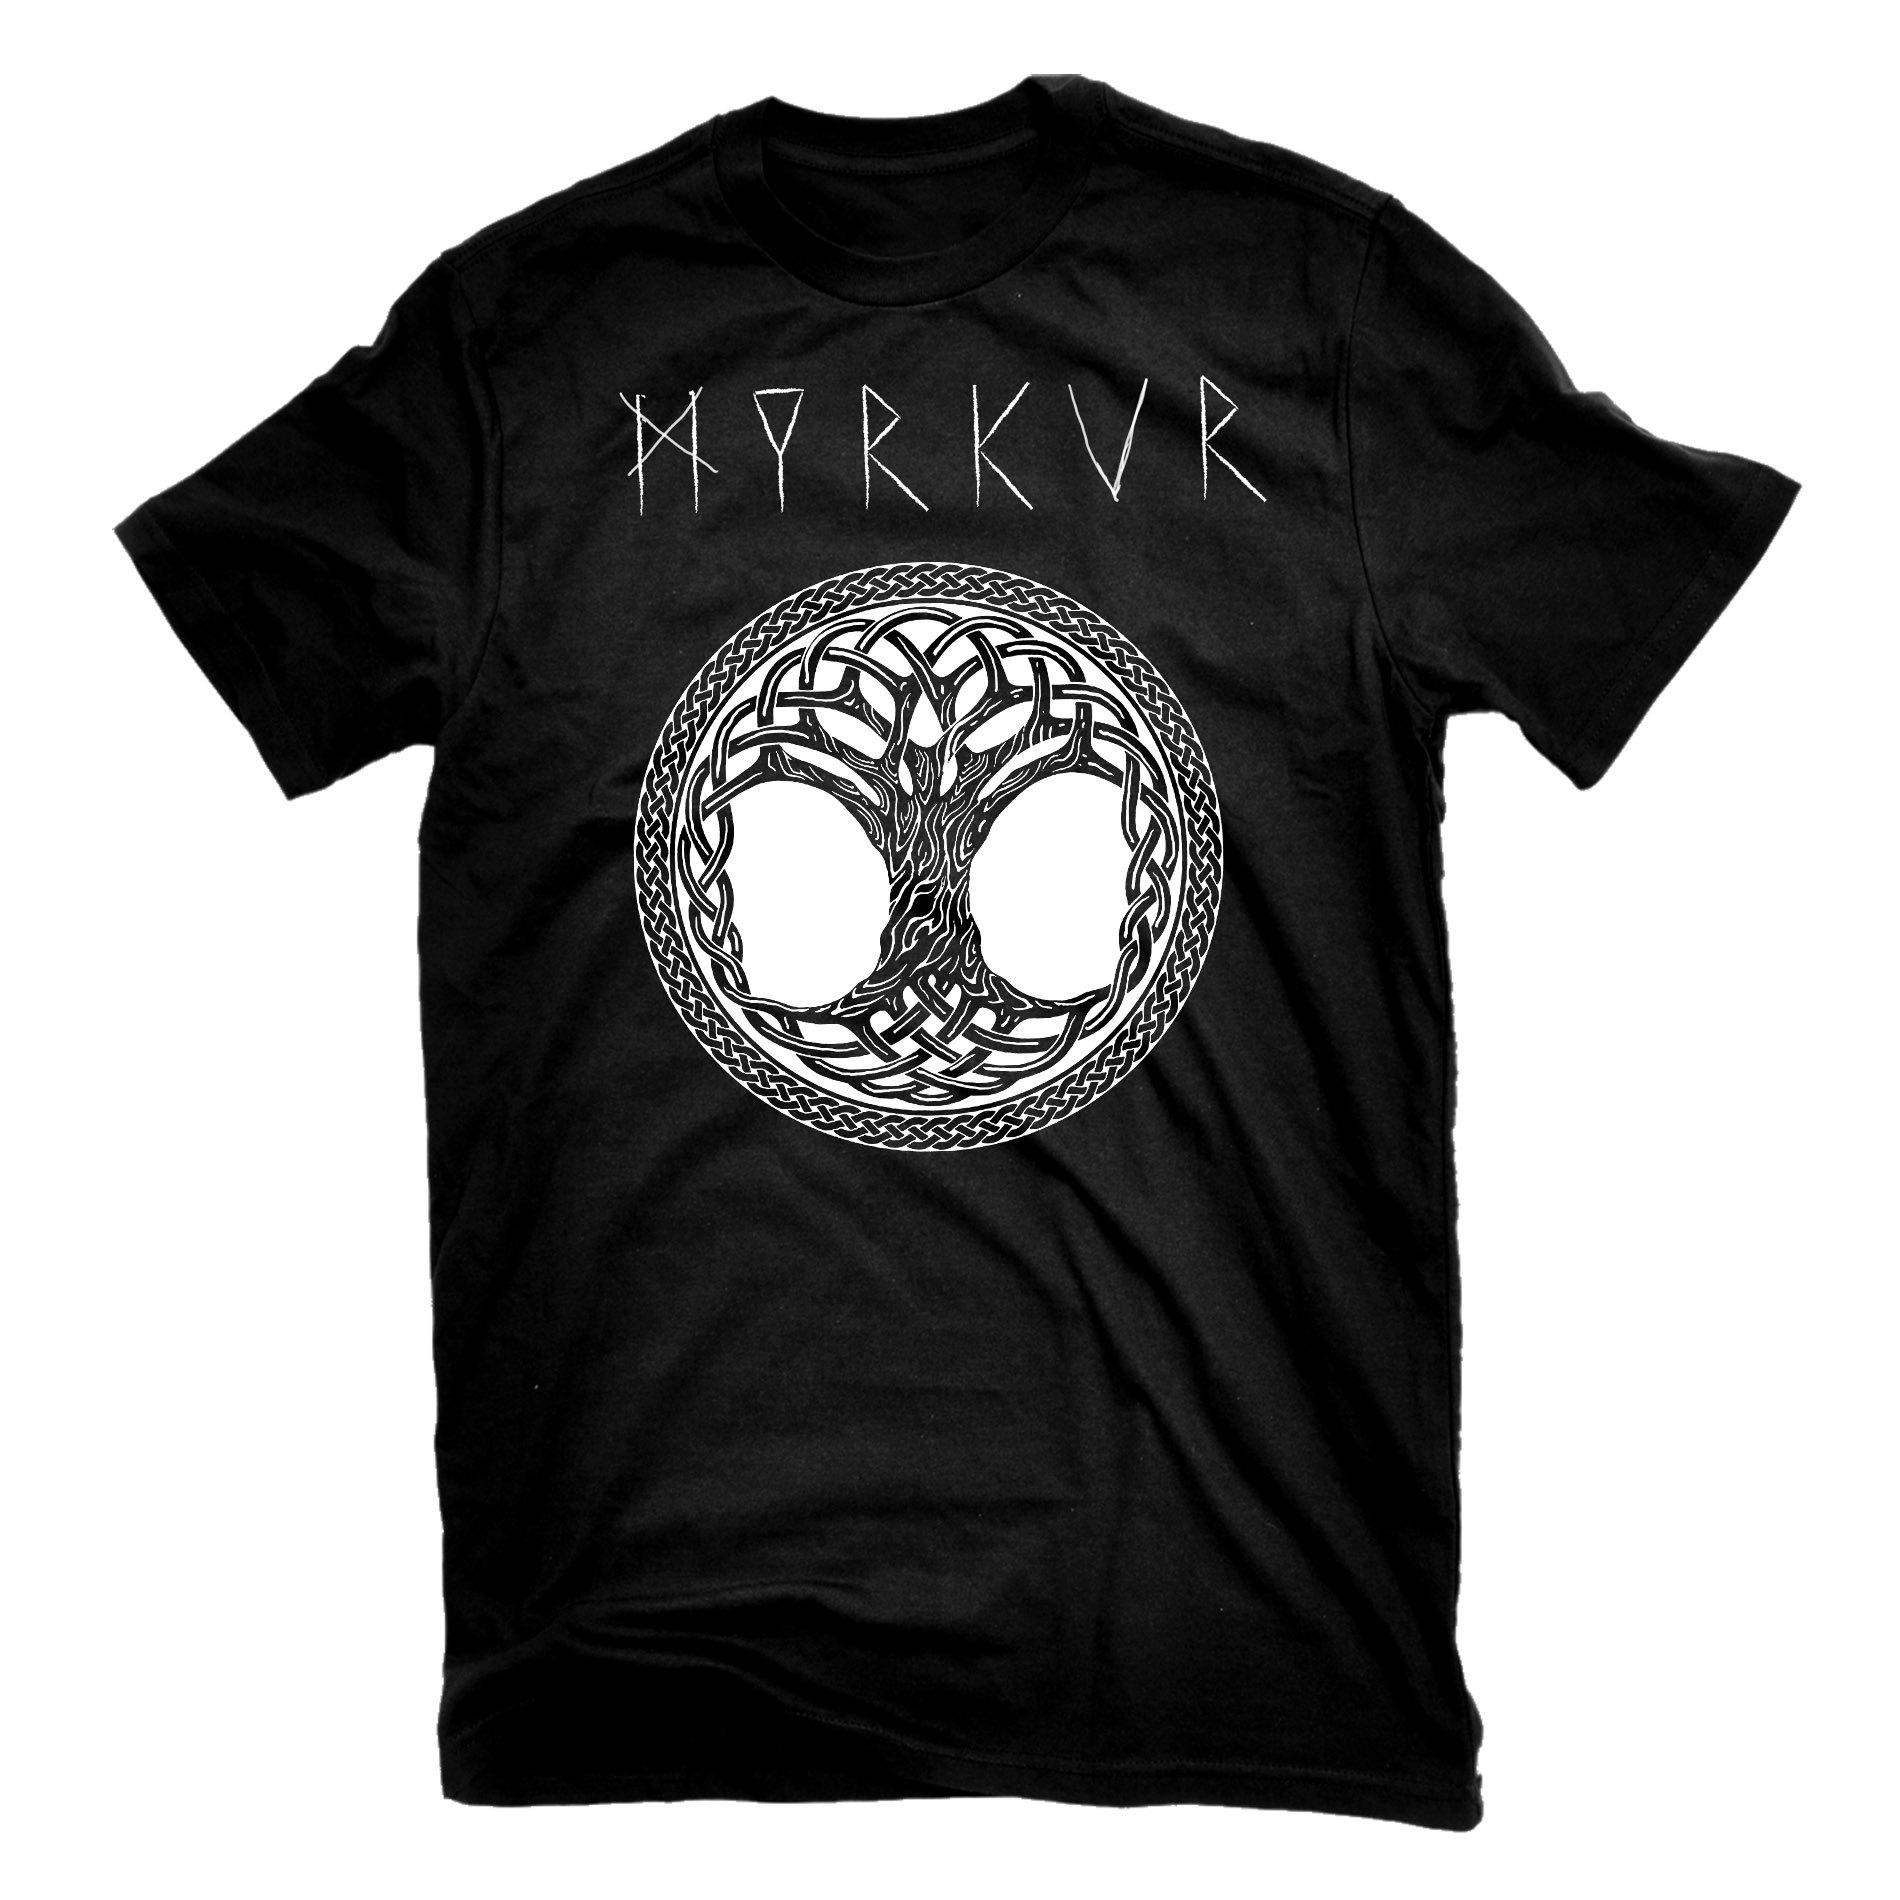 Tree T Shirt + Mareridt LP Bundle